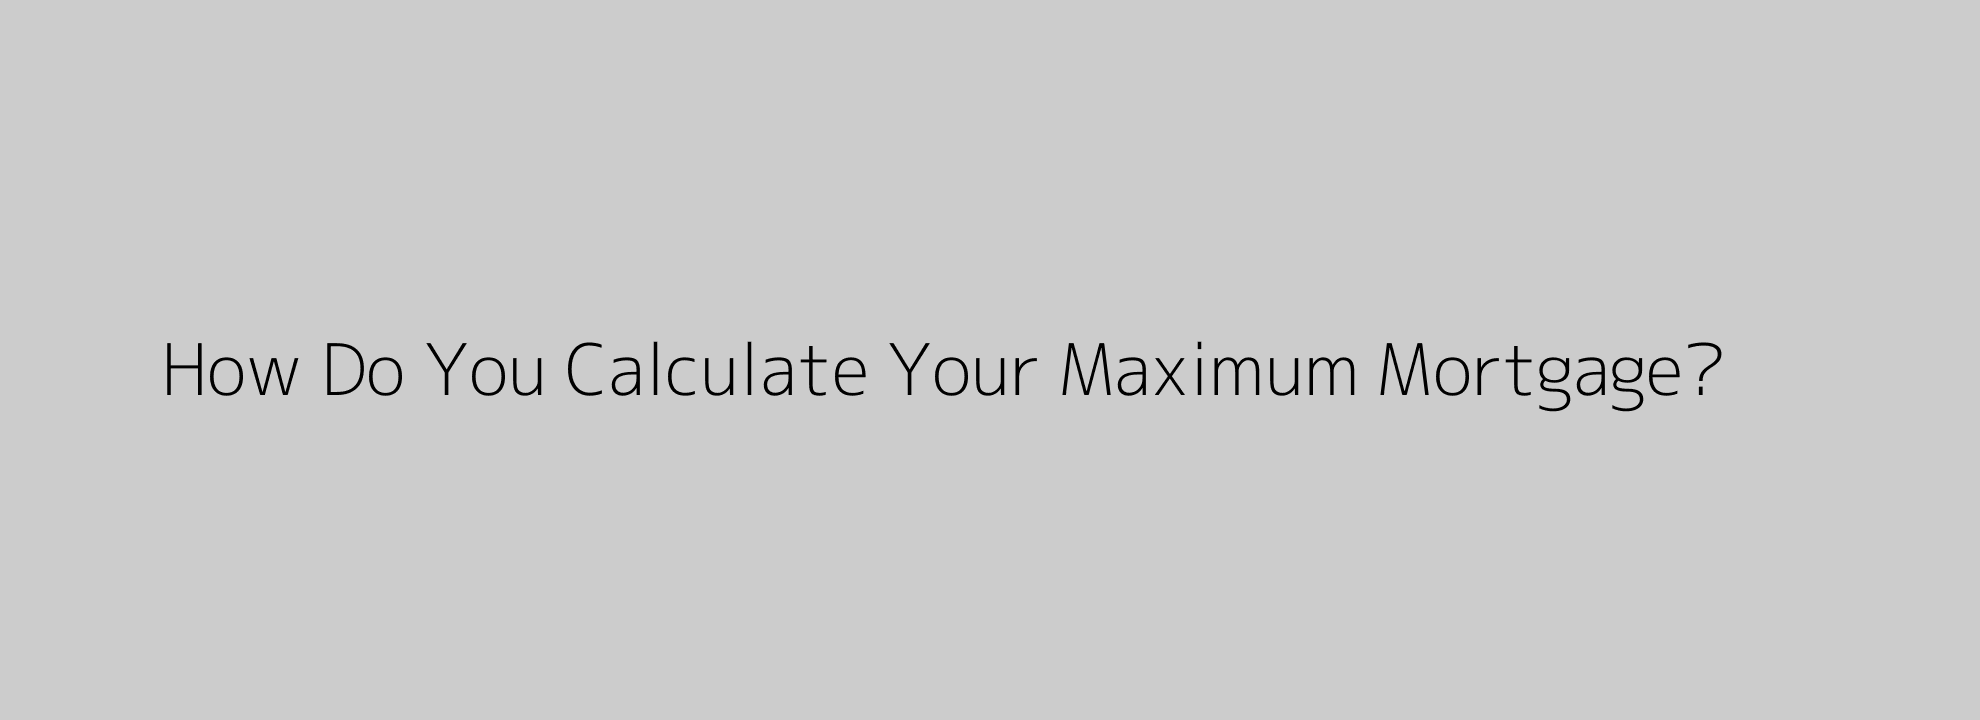 How Do You Calculate Your Maximum Mortgage?